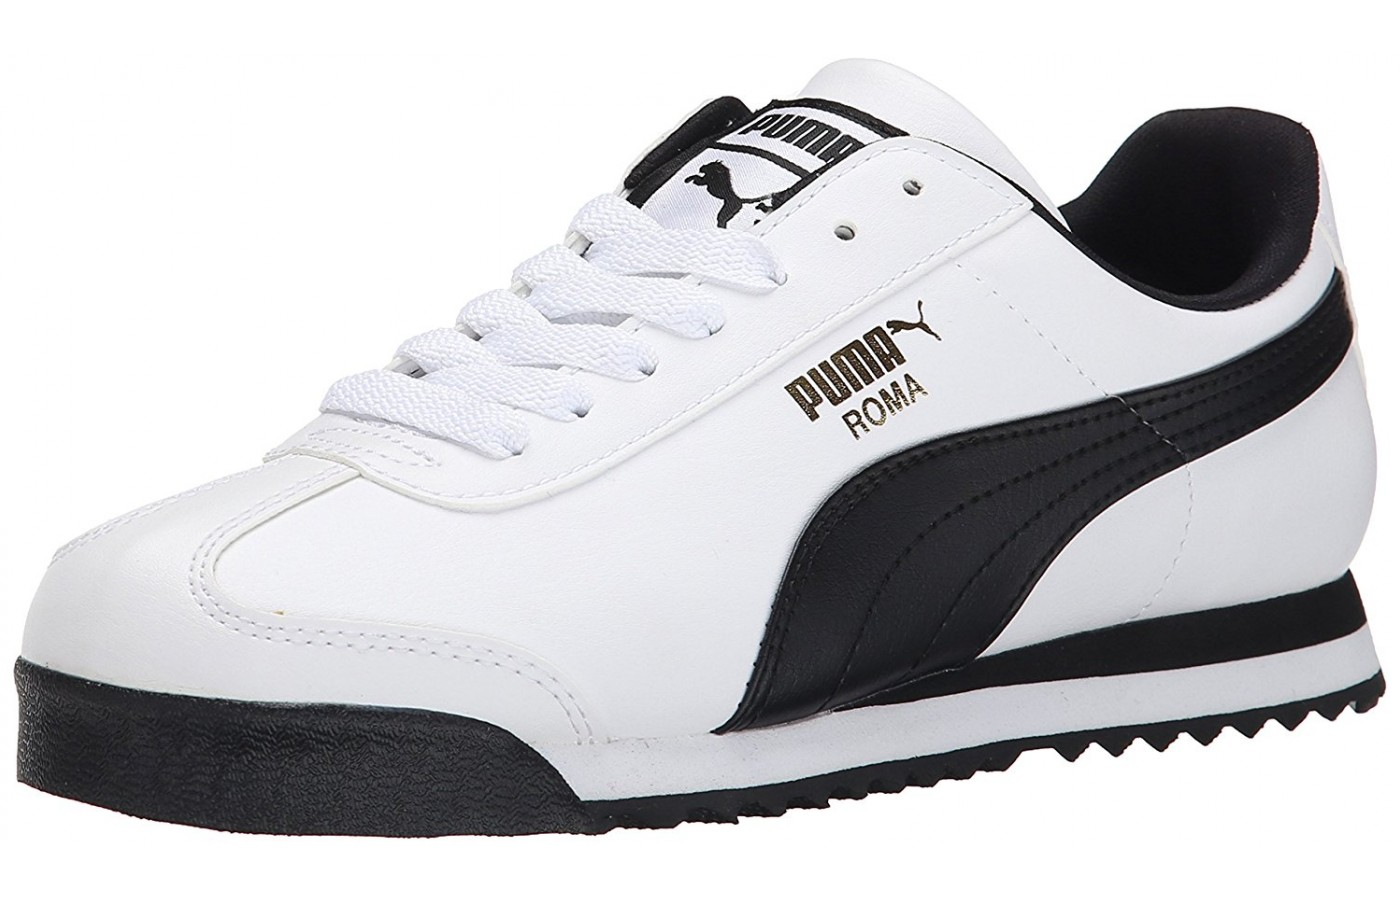 Puma Roma Reviewed for Performance in 2019 | WalkJogRun